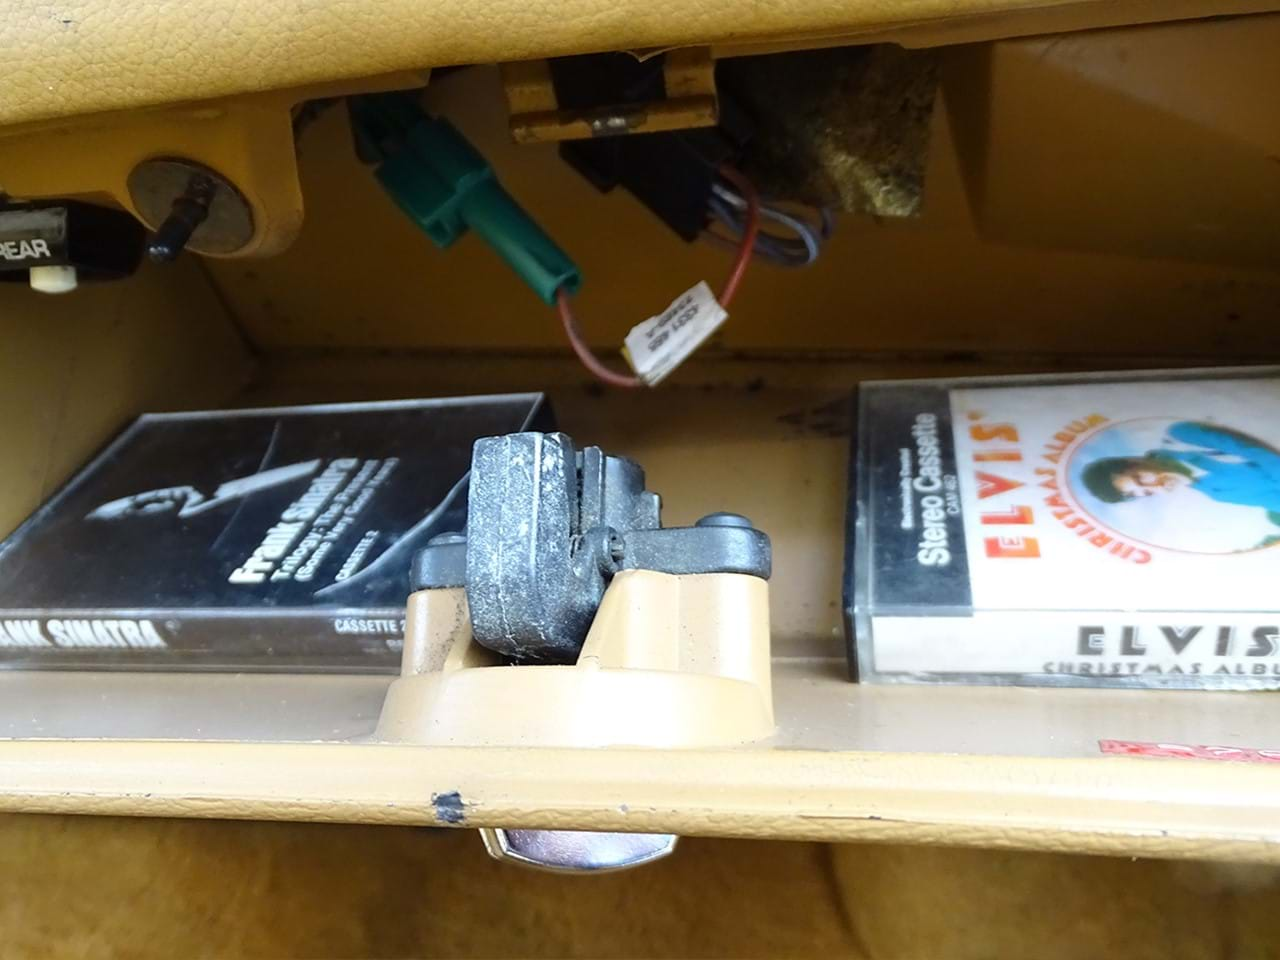 1985 Chrysler LeBaron Town and Country Wagon glove box